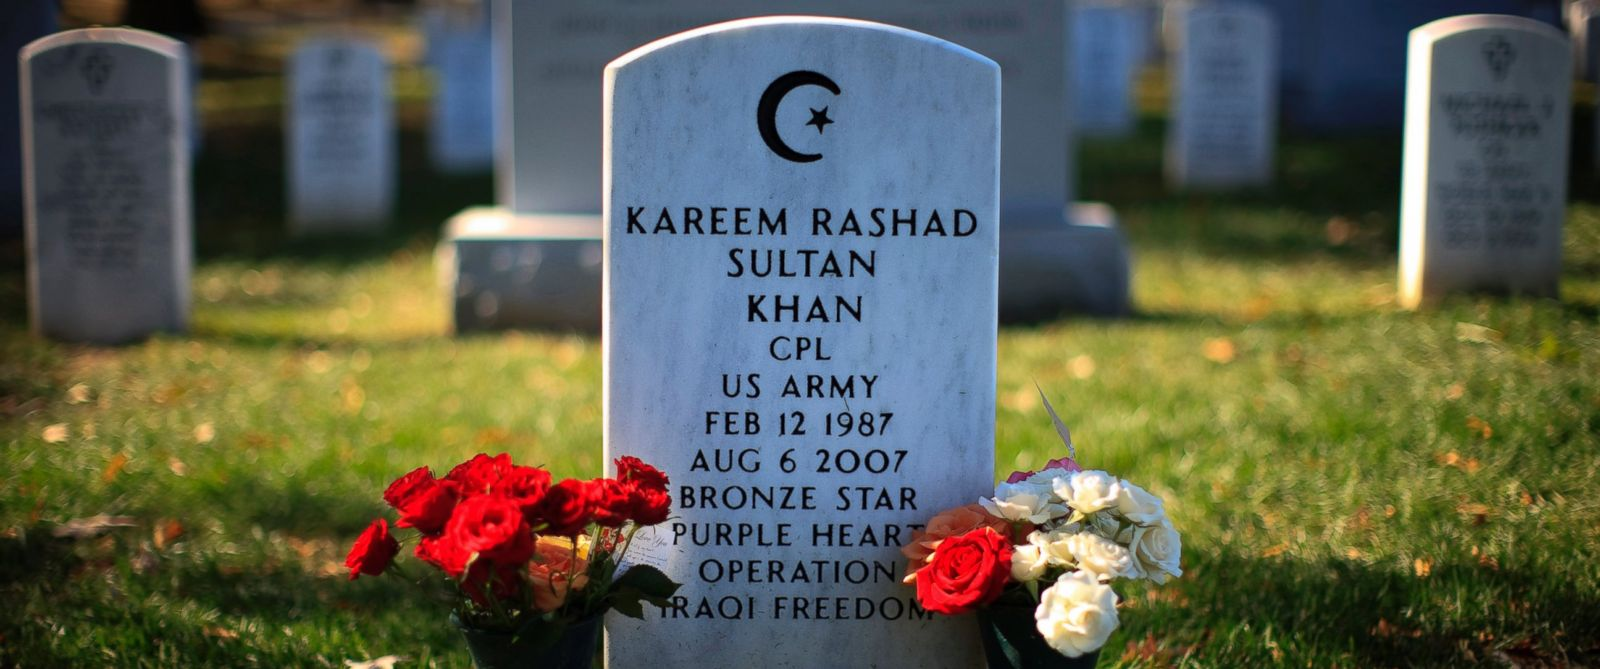 PHOTO: Kareem Rashad Sultan Khan was one of four Muslim soldiers killed in Iraq and Afghanistan and buried in Arlington National Cemetery in Arlington, Va.